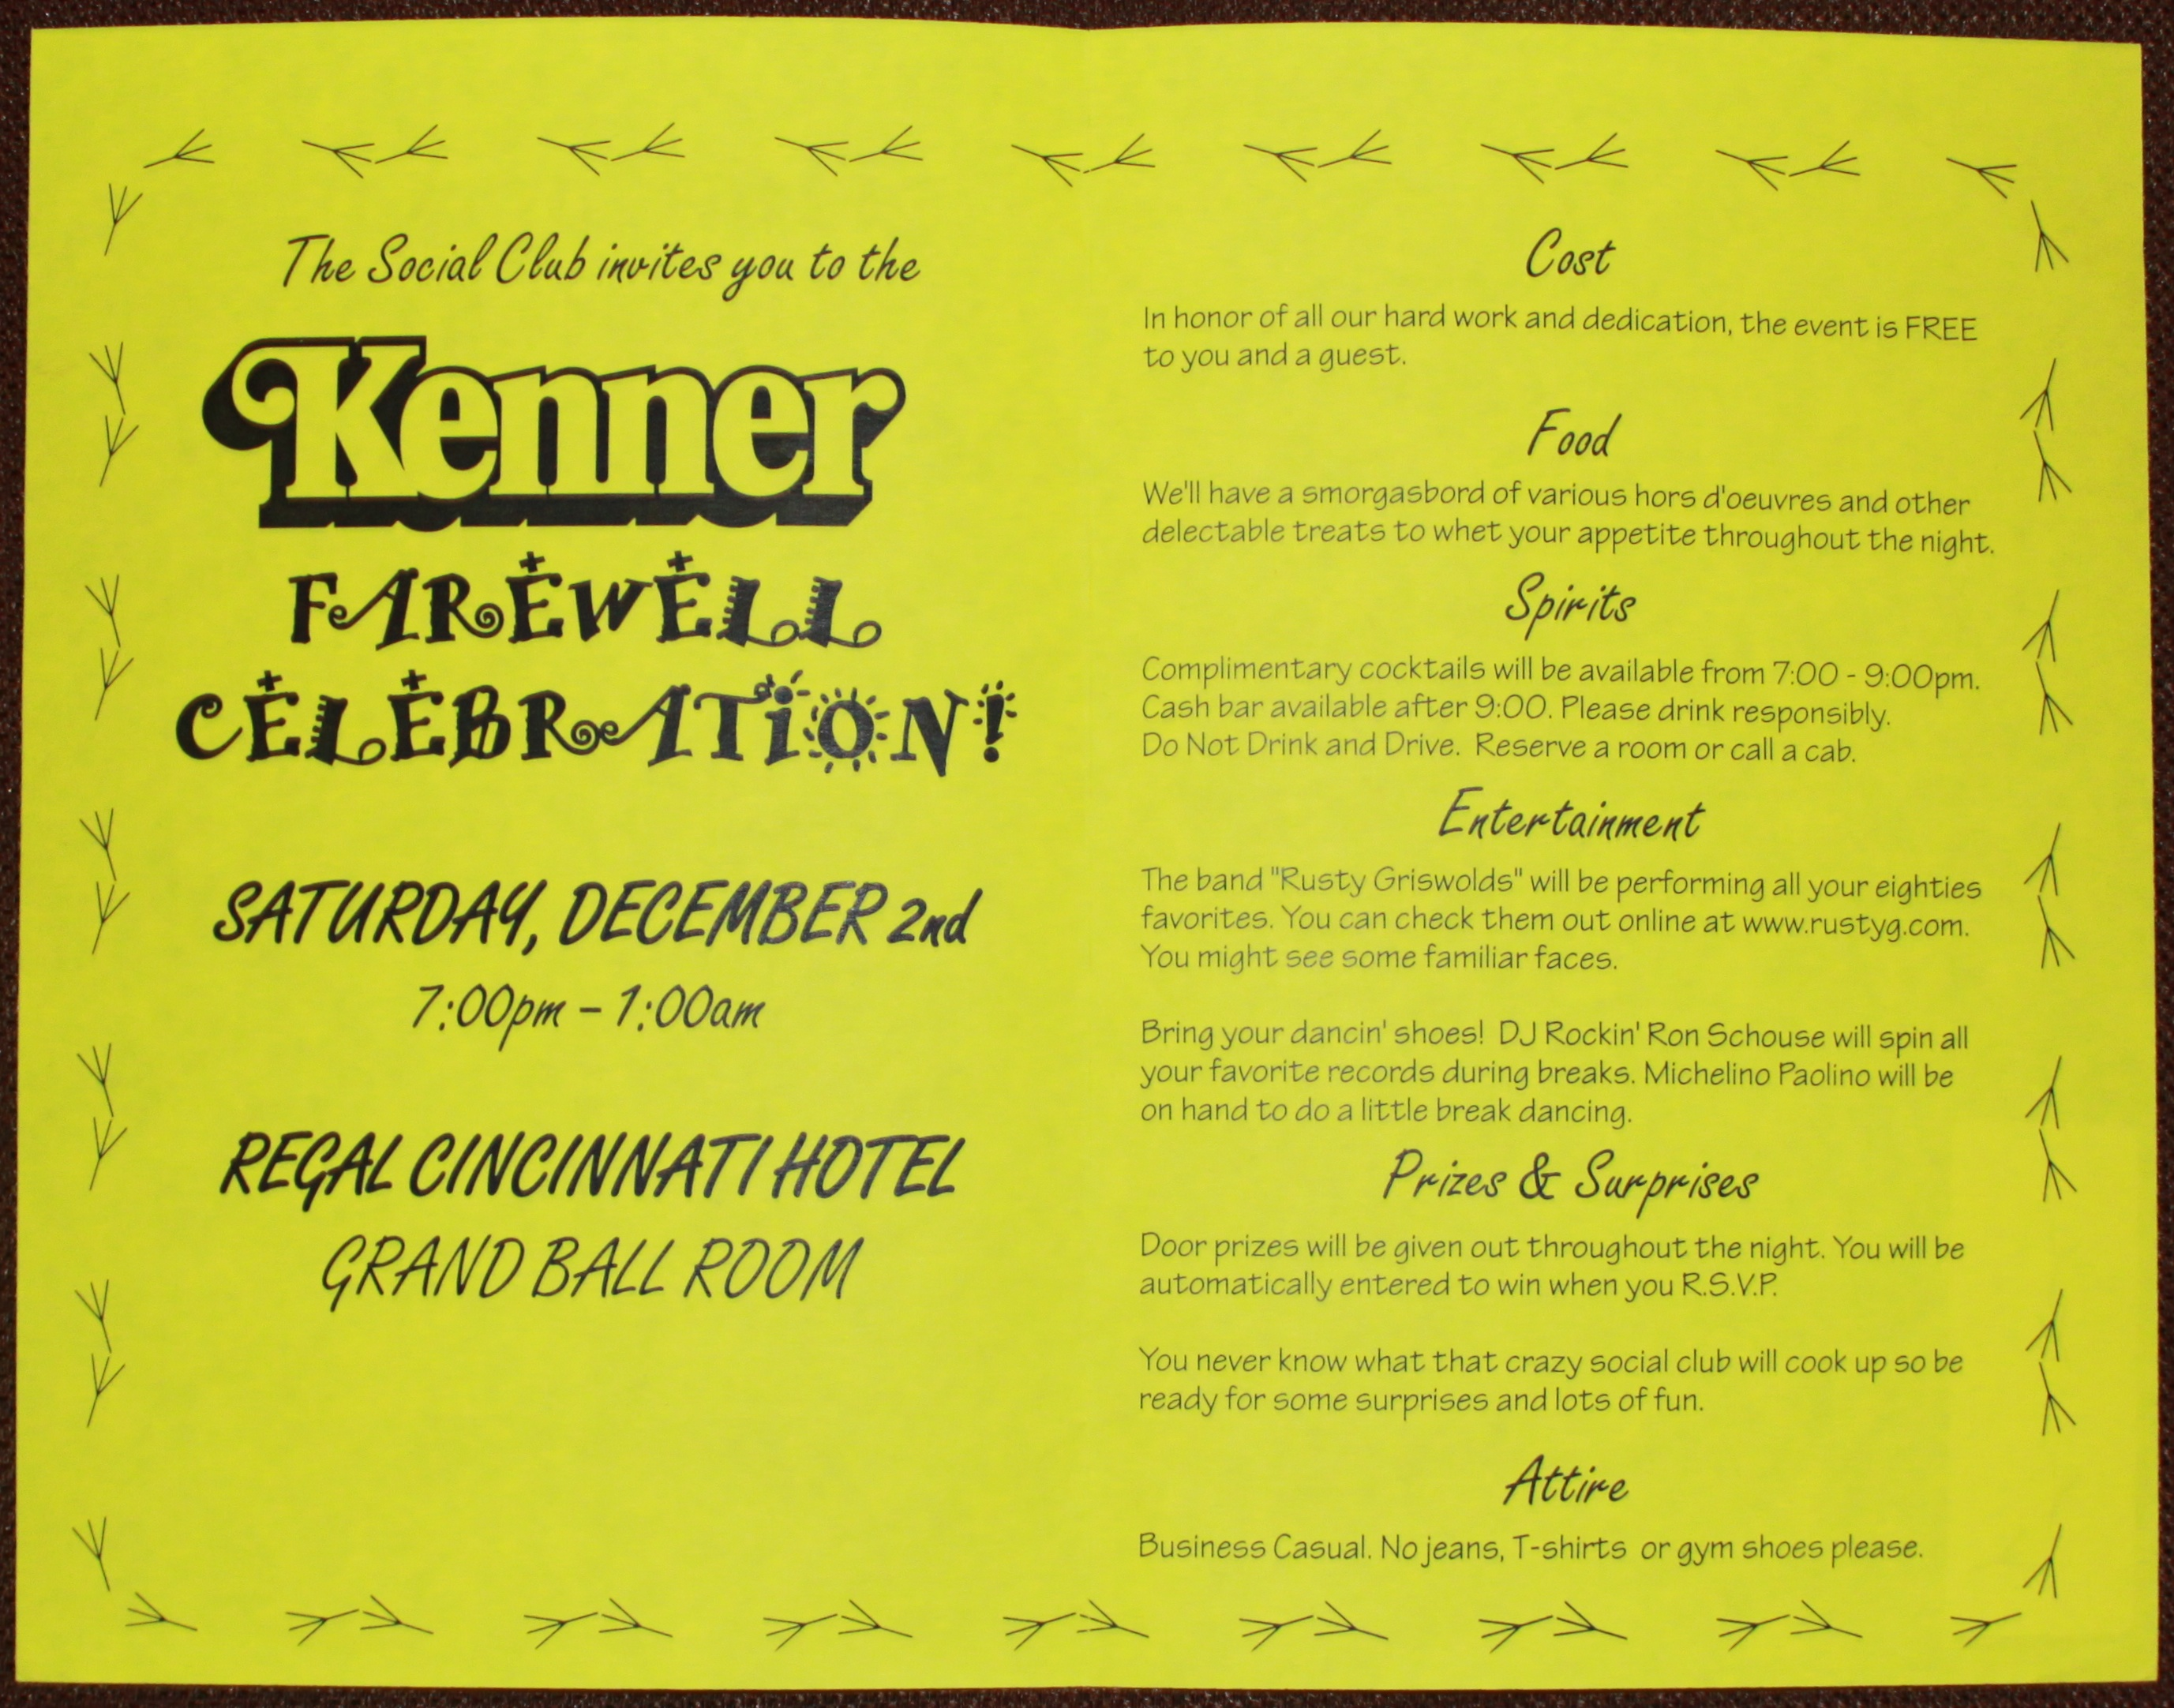 kenner employee farewell invitation - Goodbye Party Invitation